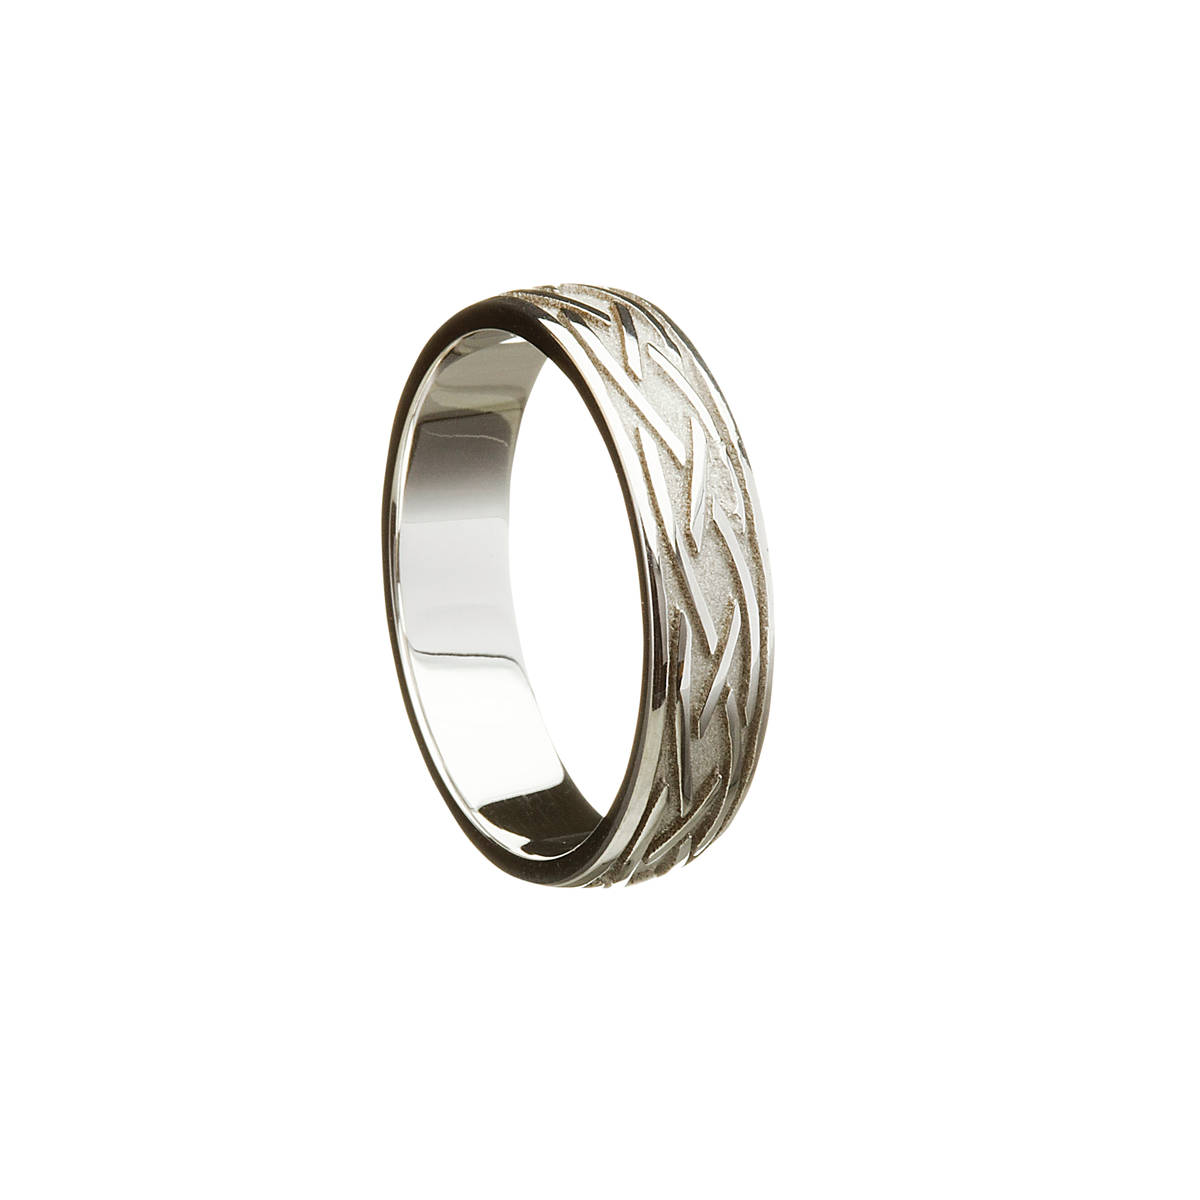 18 carat white gold man's three lines entwined open design wedding ring 5.6 mm wide approx.